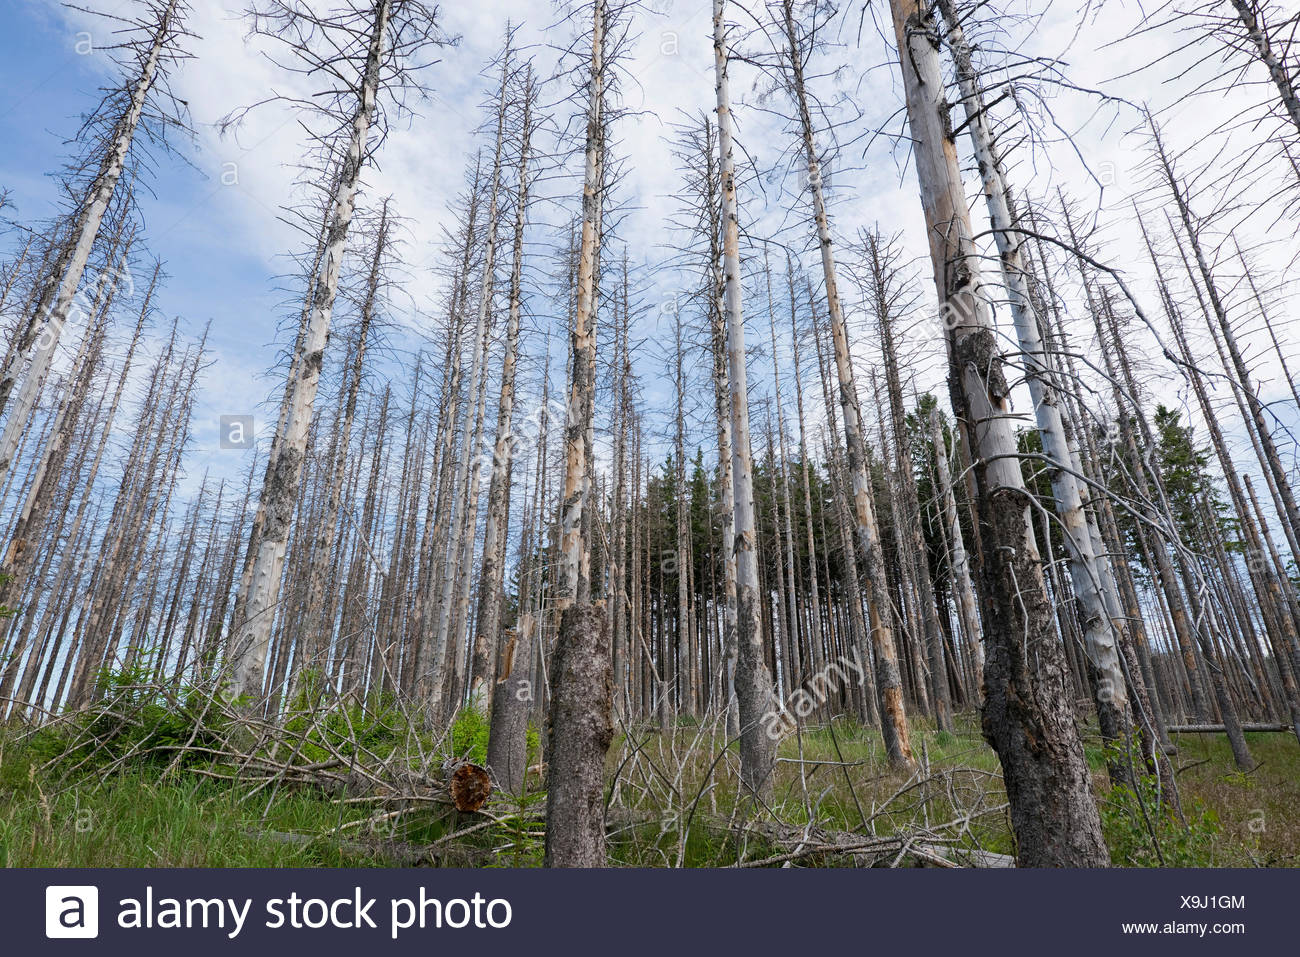 Dead Spruce Trees (Picea abies) after infestation and herbivory of the Eight-toothed Spruce Bark Beetle (Ips typographus) - Stock Image